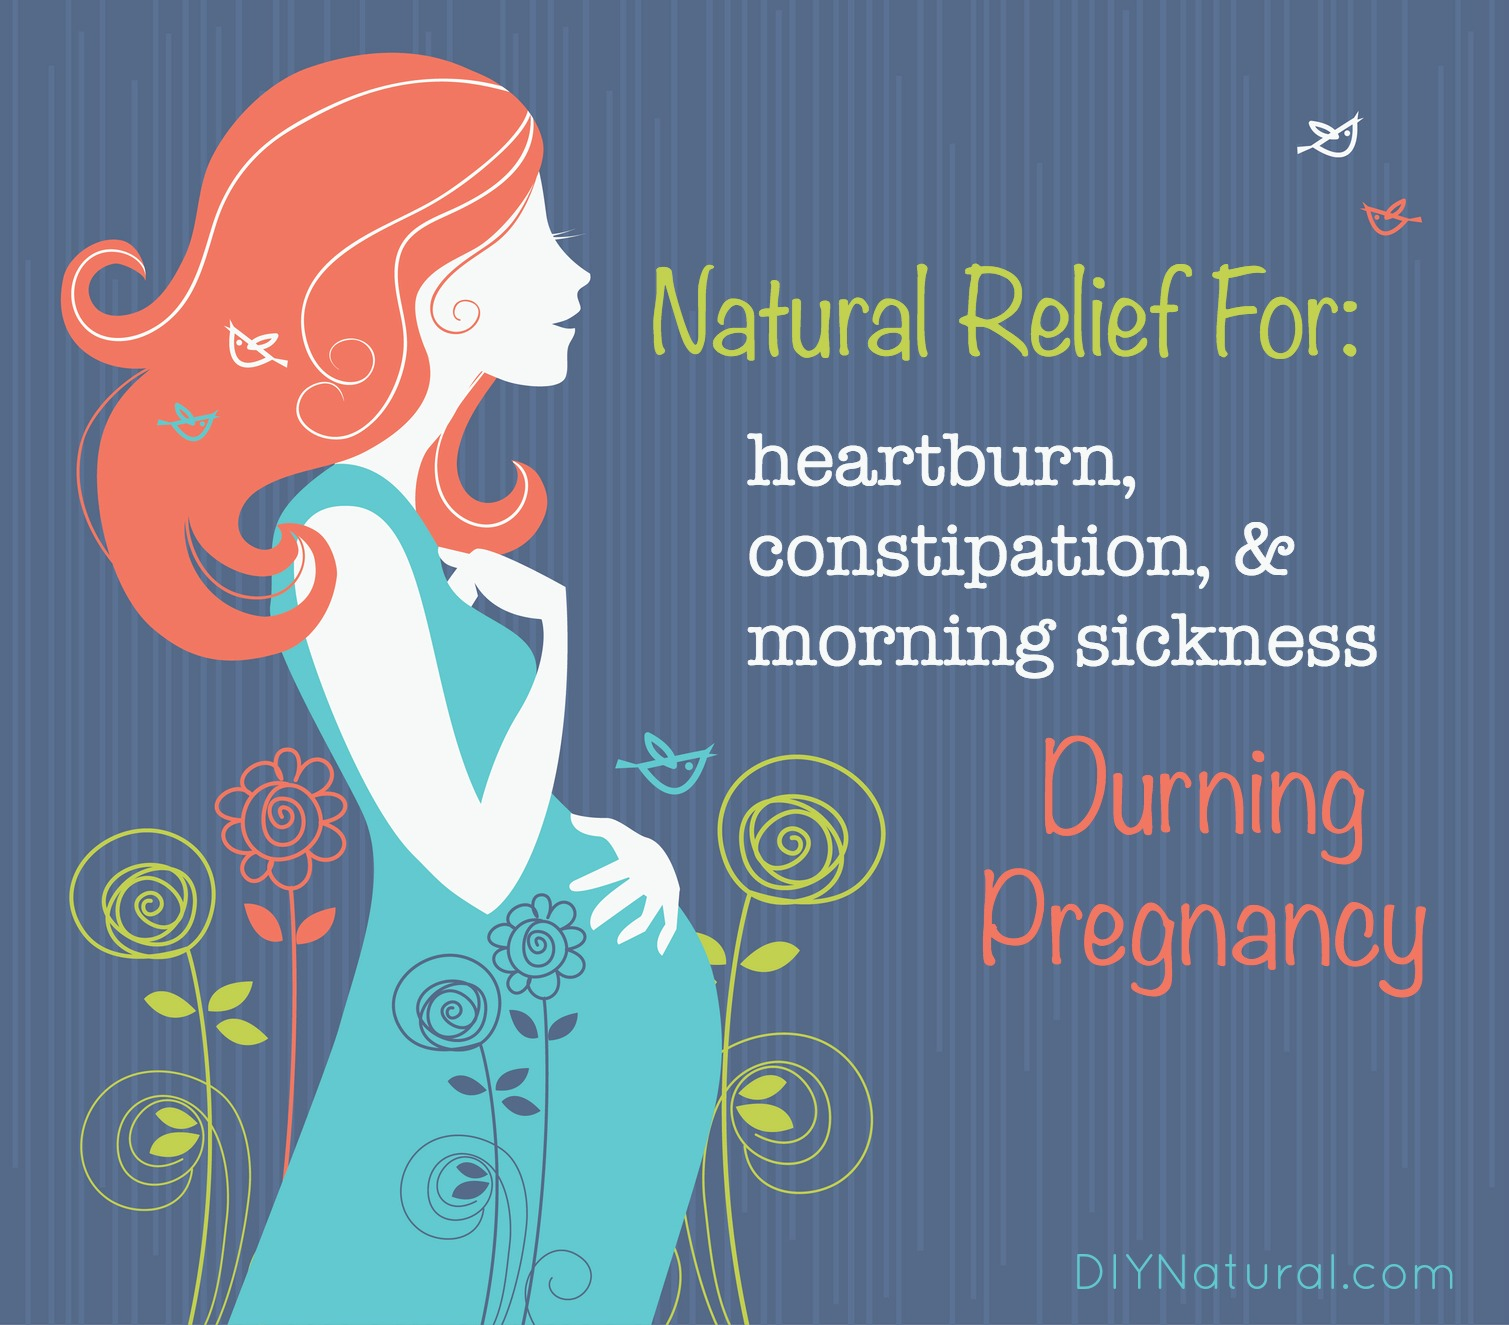 Natural Relief for Constipation Heartburn During Pregnancy